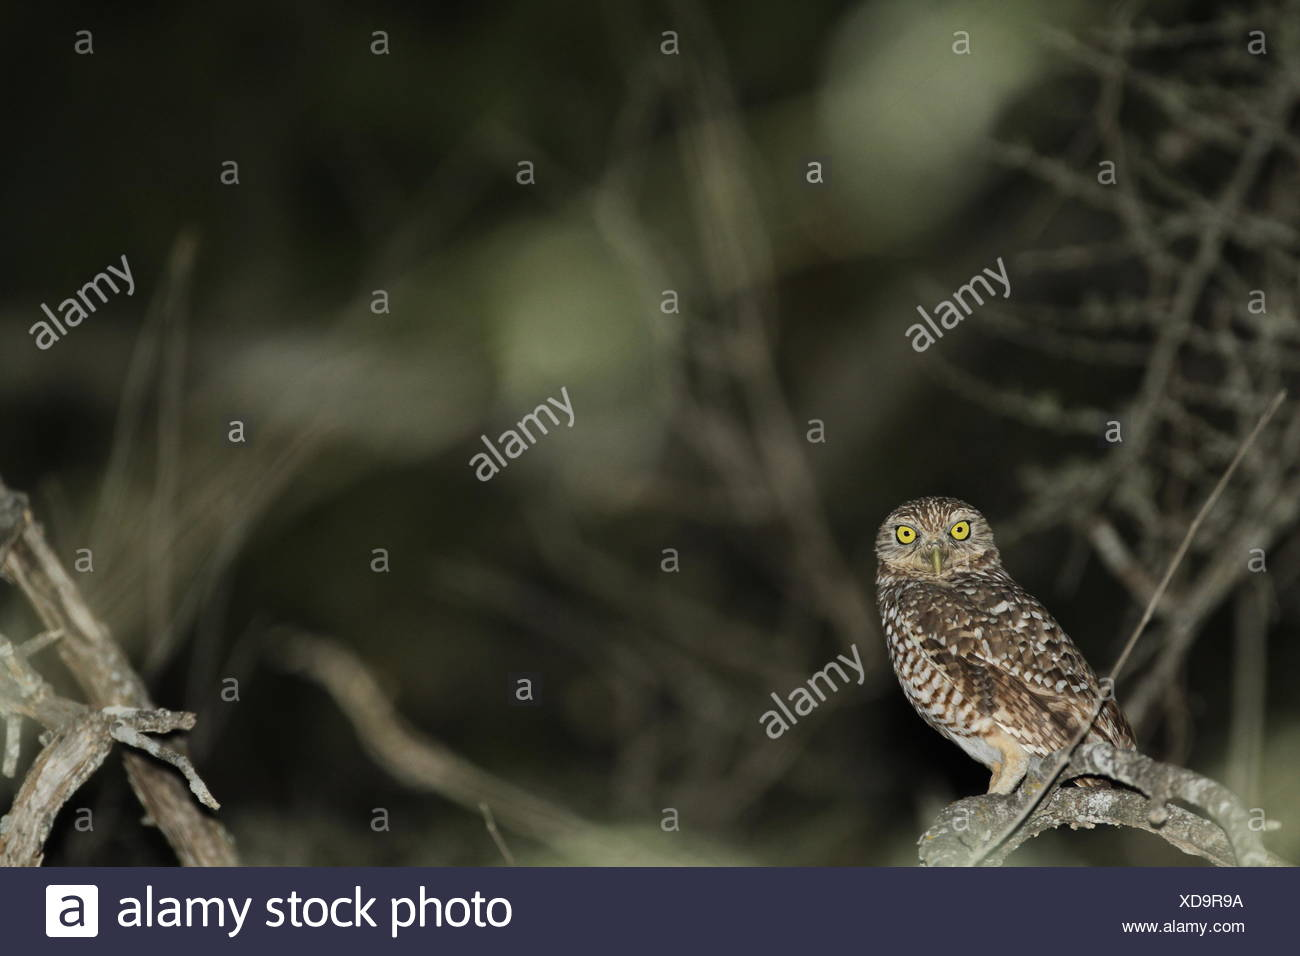 A burrowing owl, Athene cunicularia, perching on the branch of a tree. - Stock Image